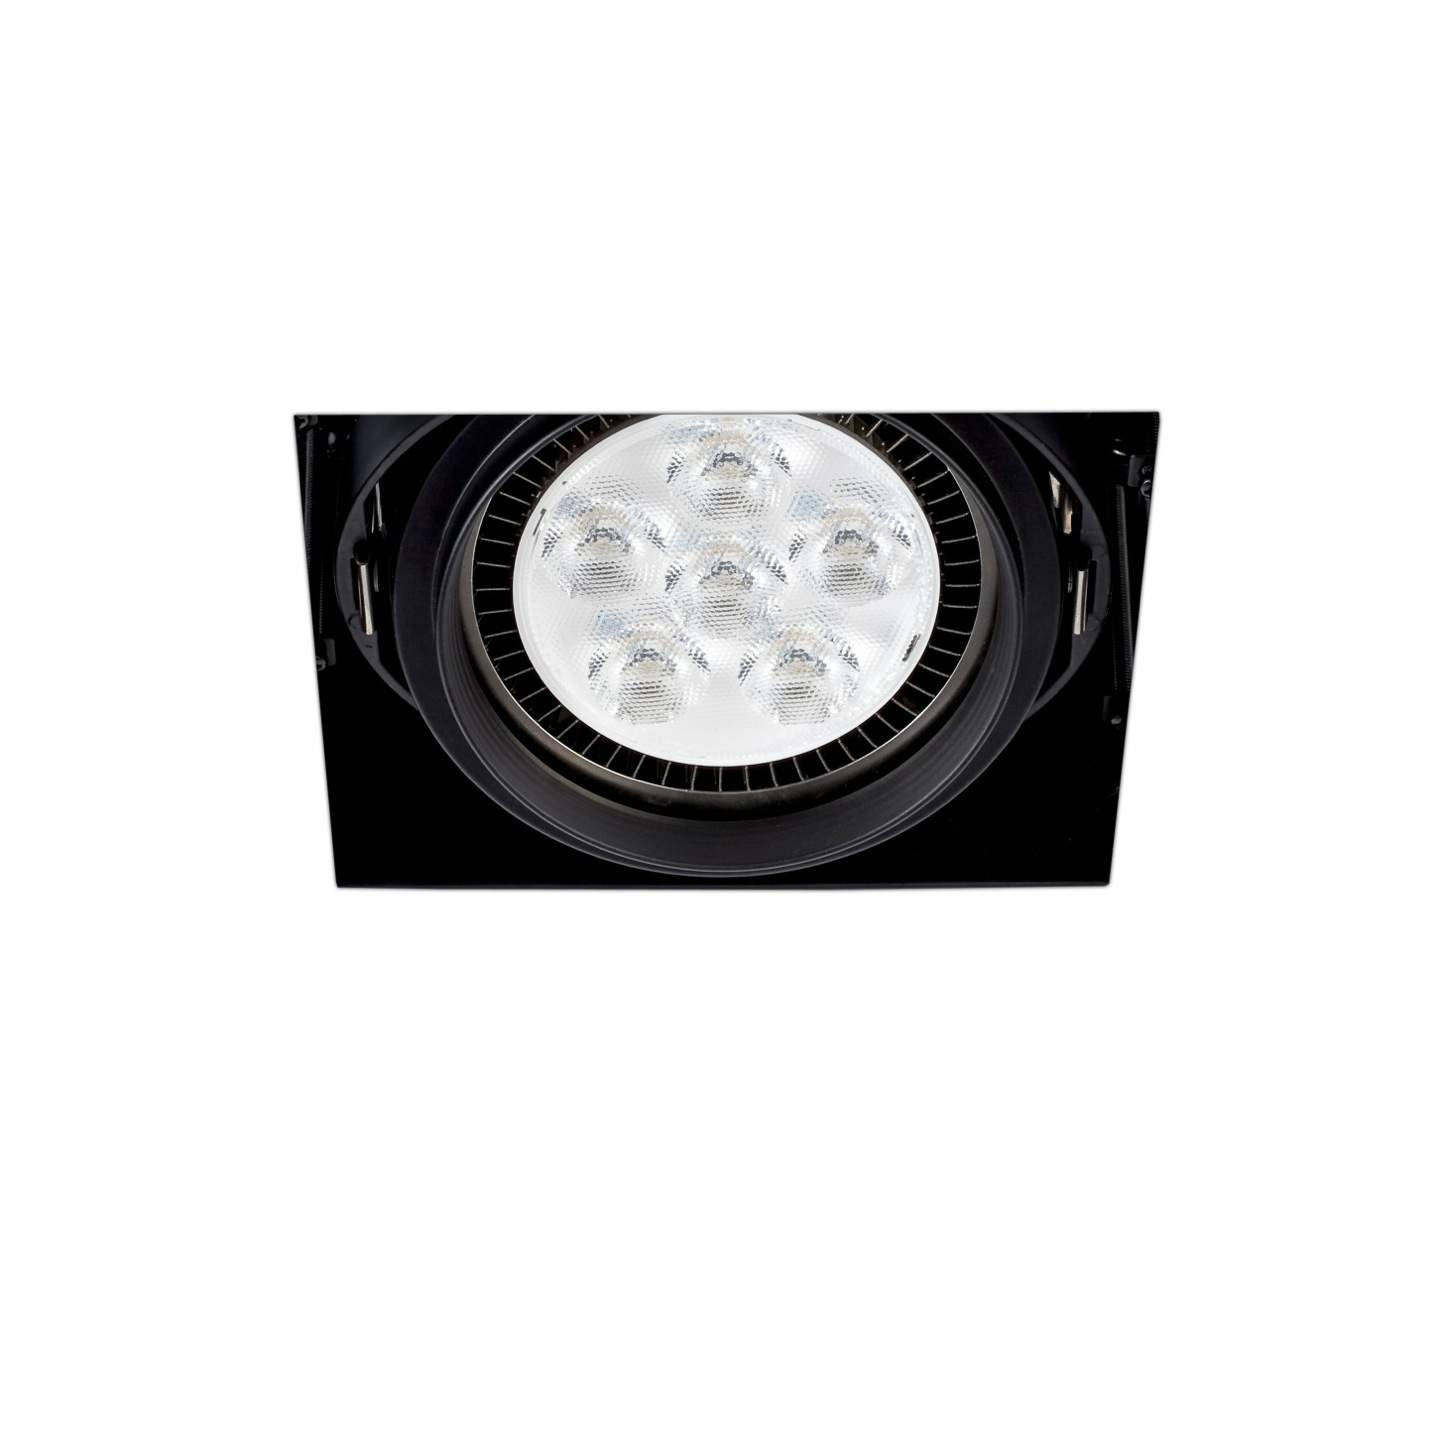 Morris Recessed Ceiling (body without PortaLámpara s) 1xelement without Framework